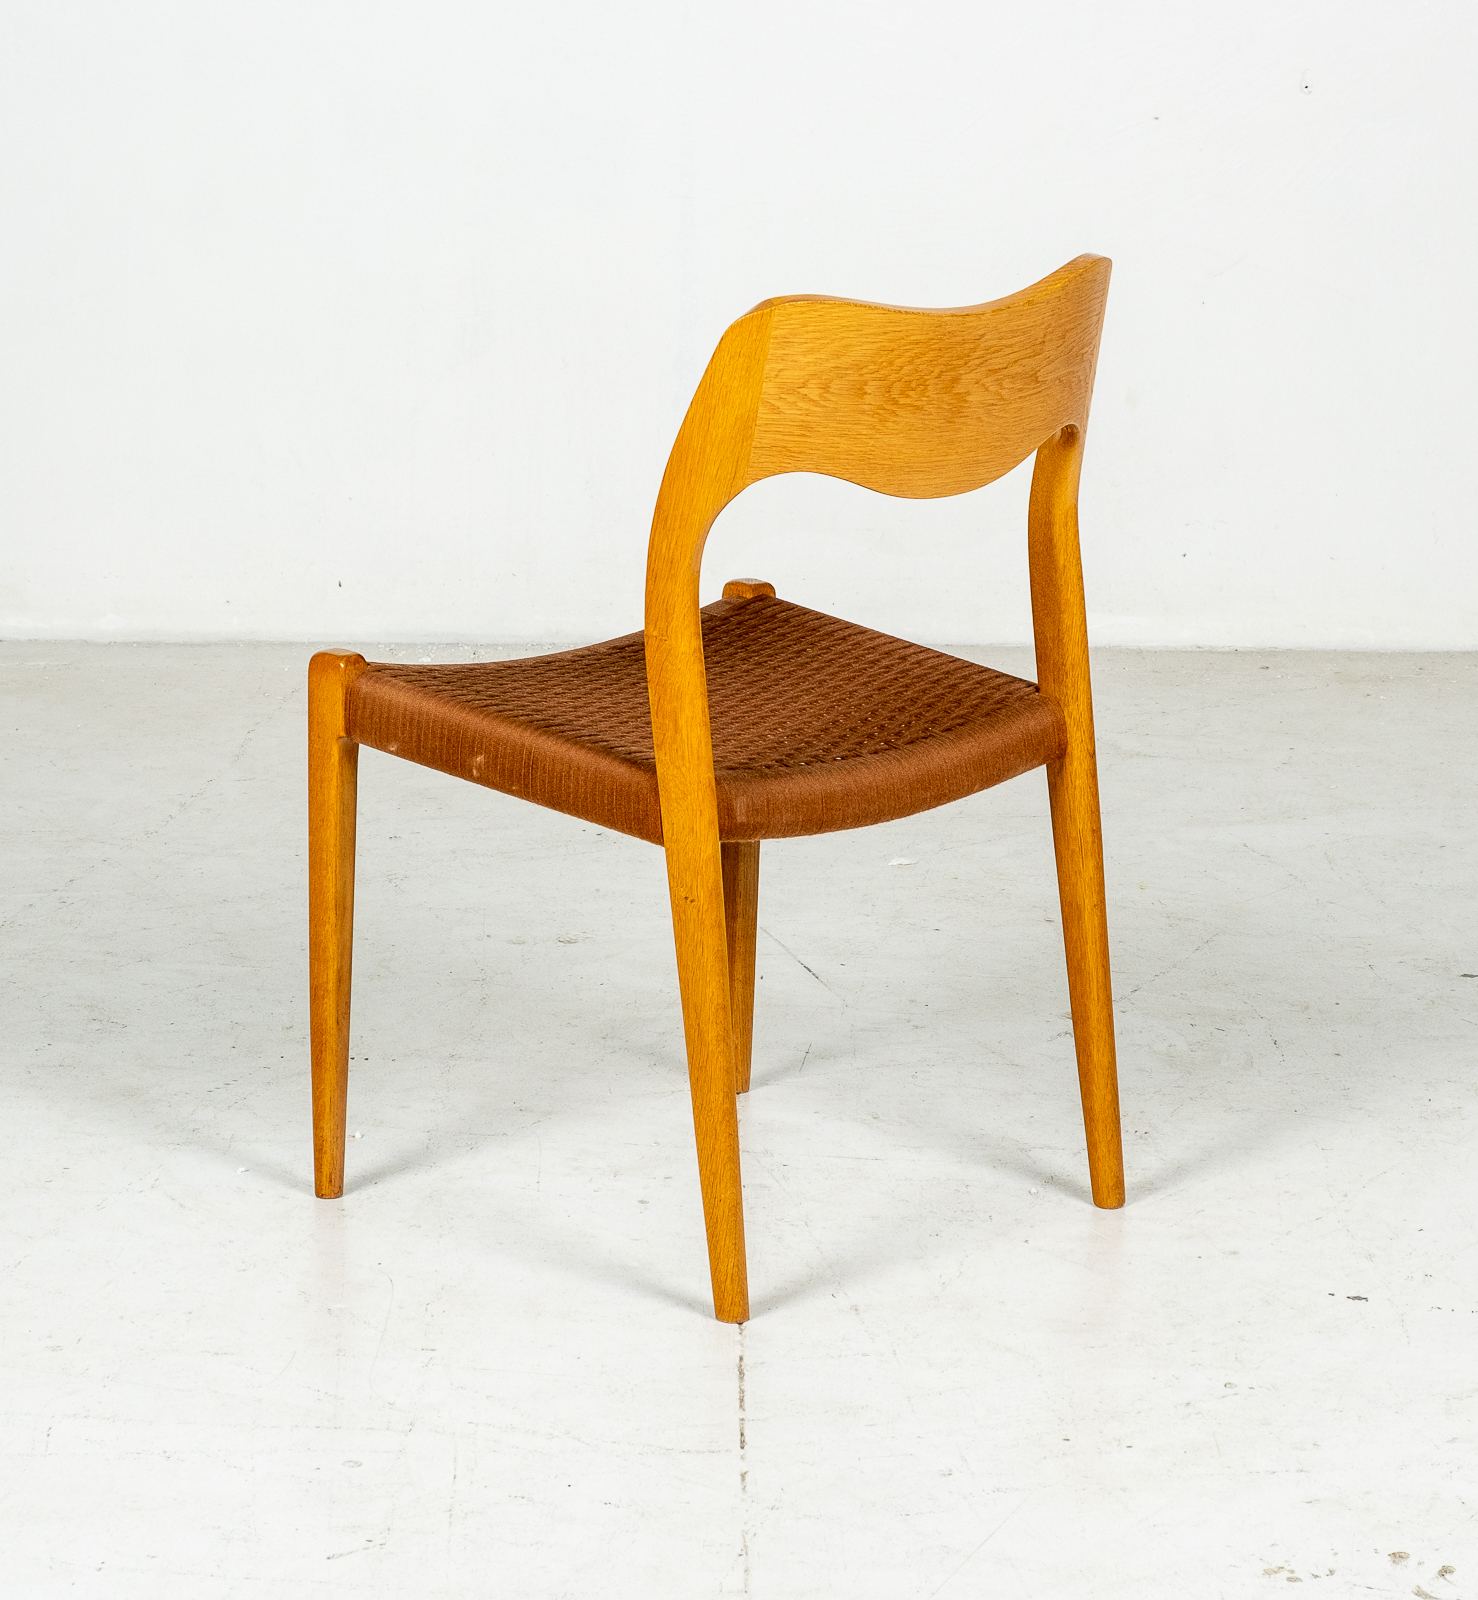 Set Of 6 Model 71 Dining Chairs By Niels Moller In Original Tan Wool Cord, 1960s, Denmark7